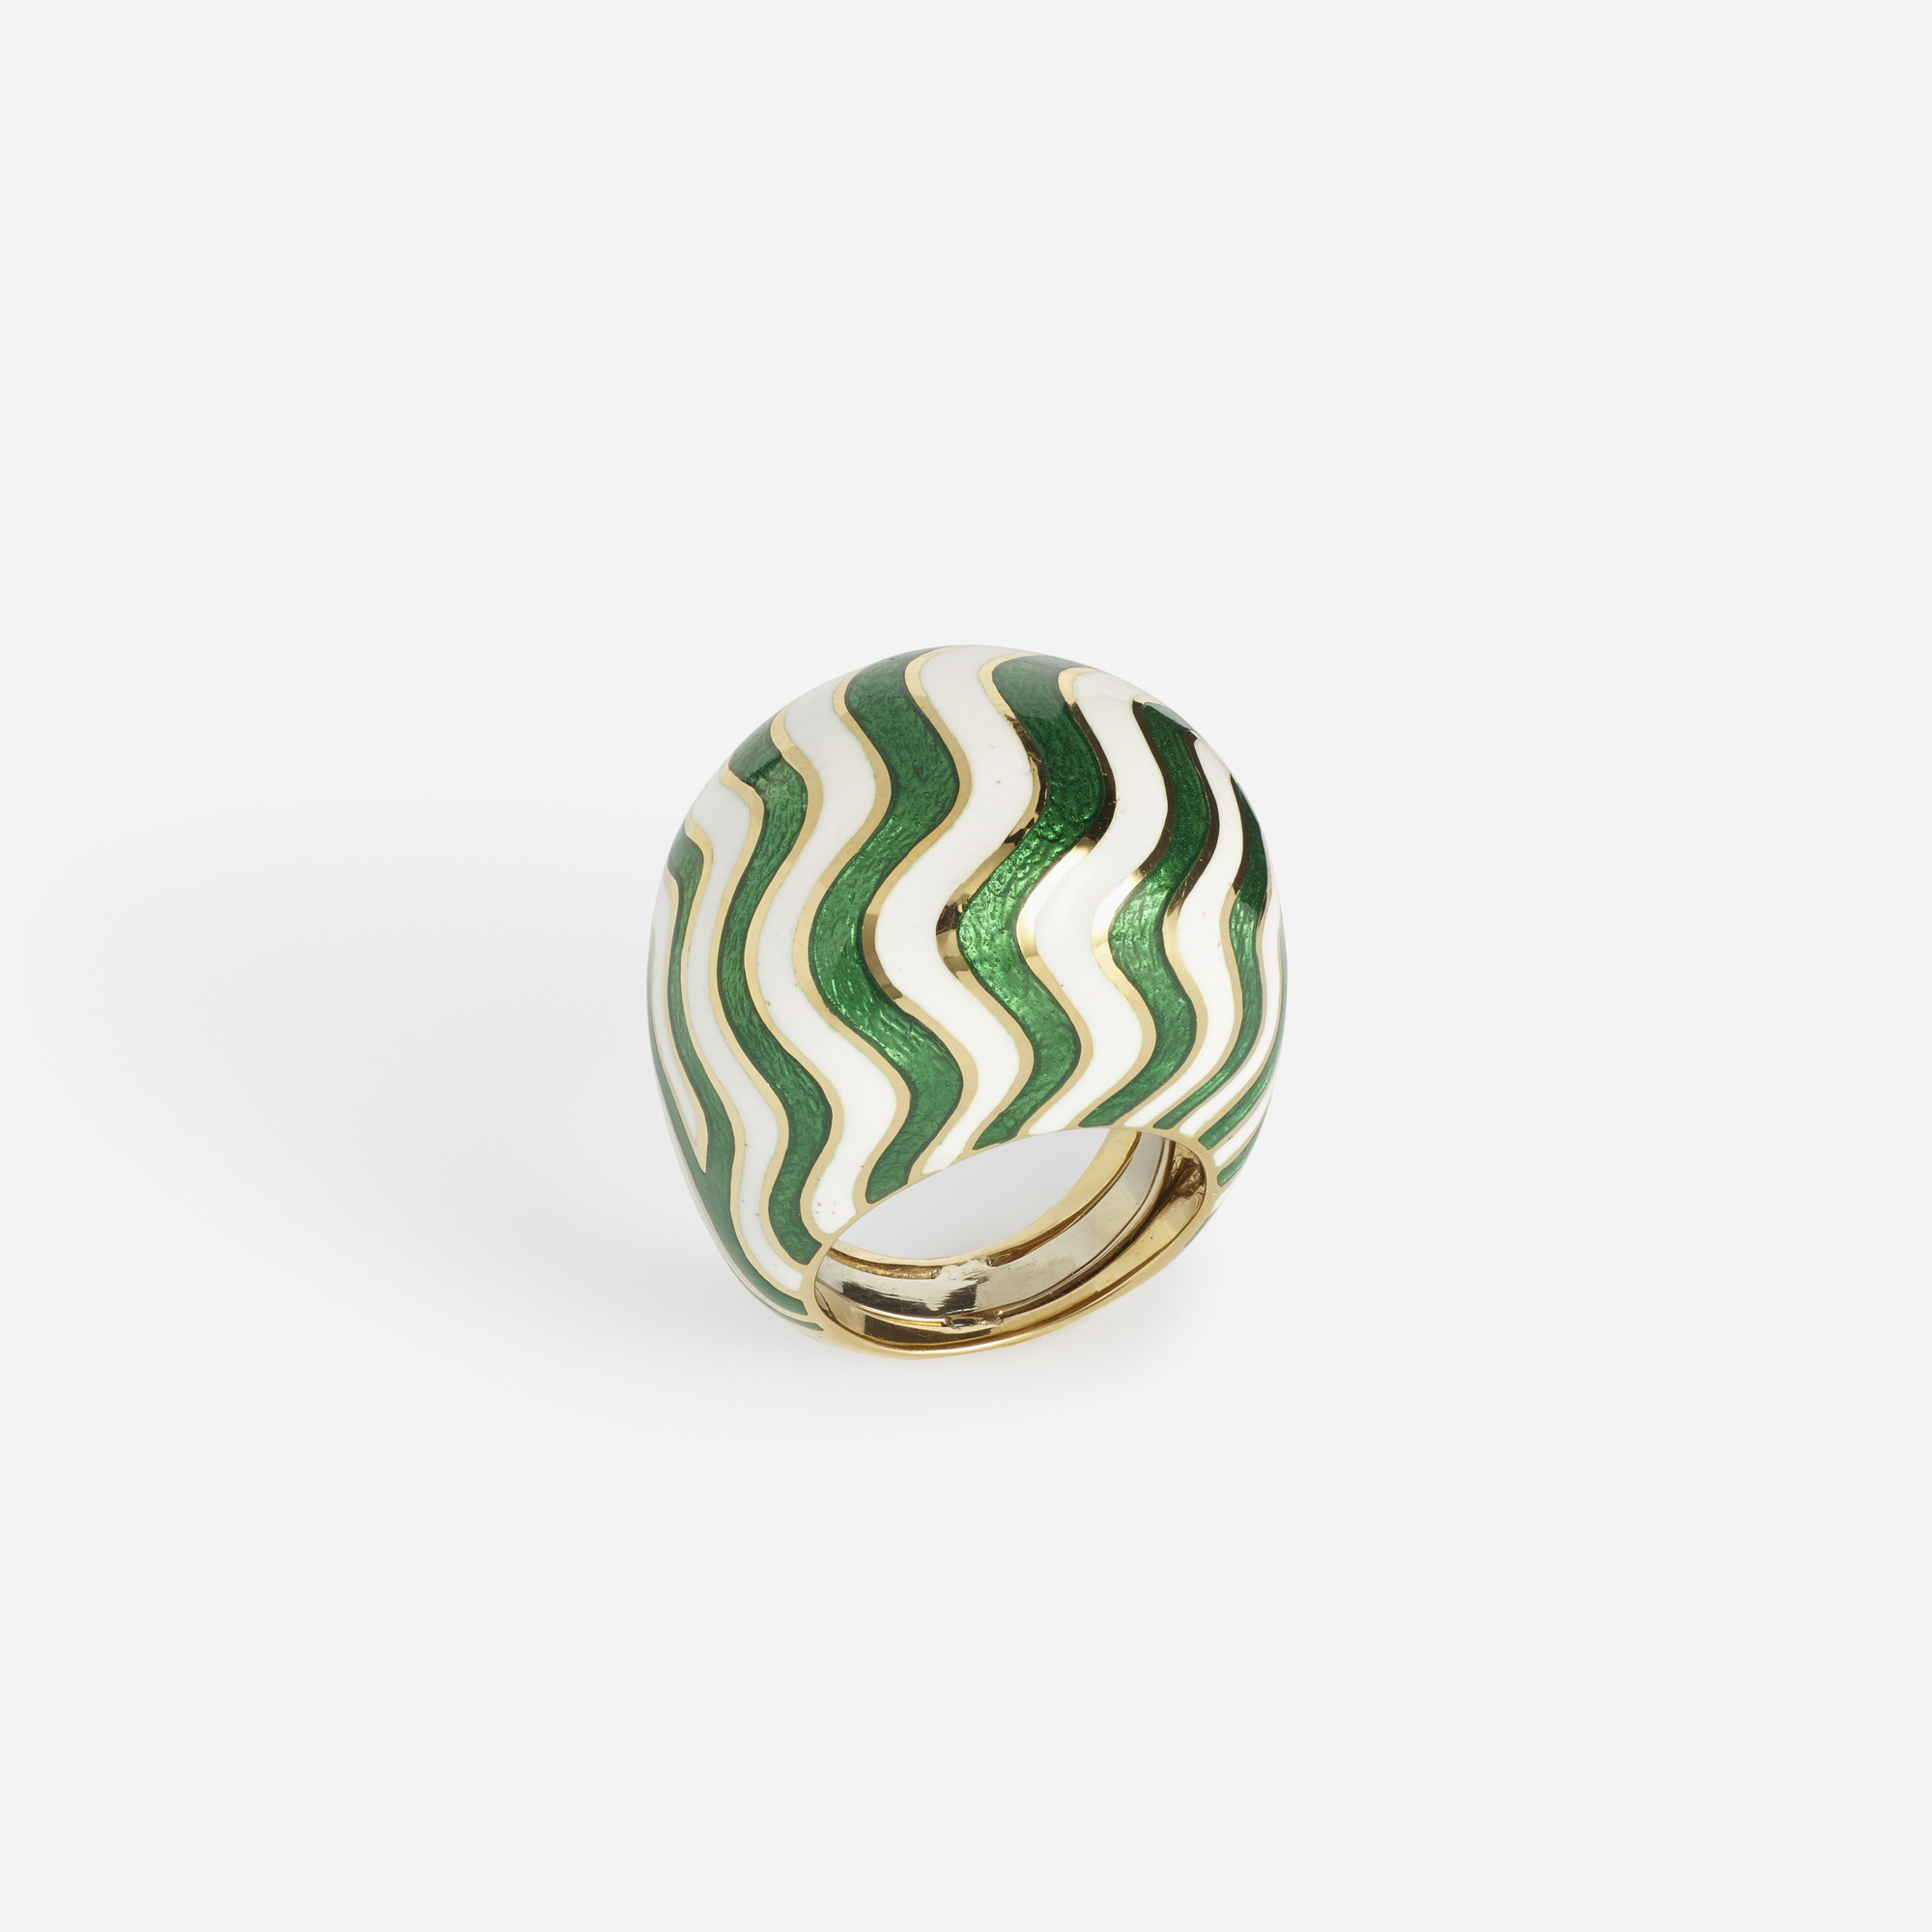 253: David Webb / A gold and enameled ring (2 of 2)